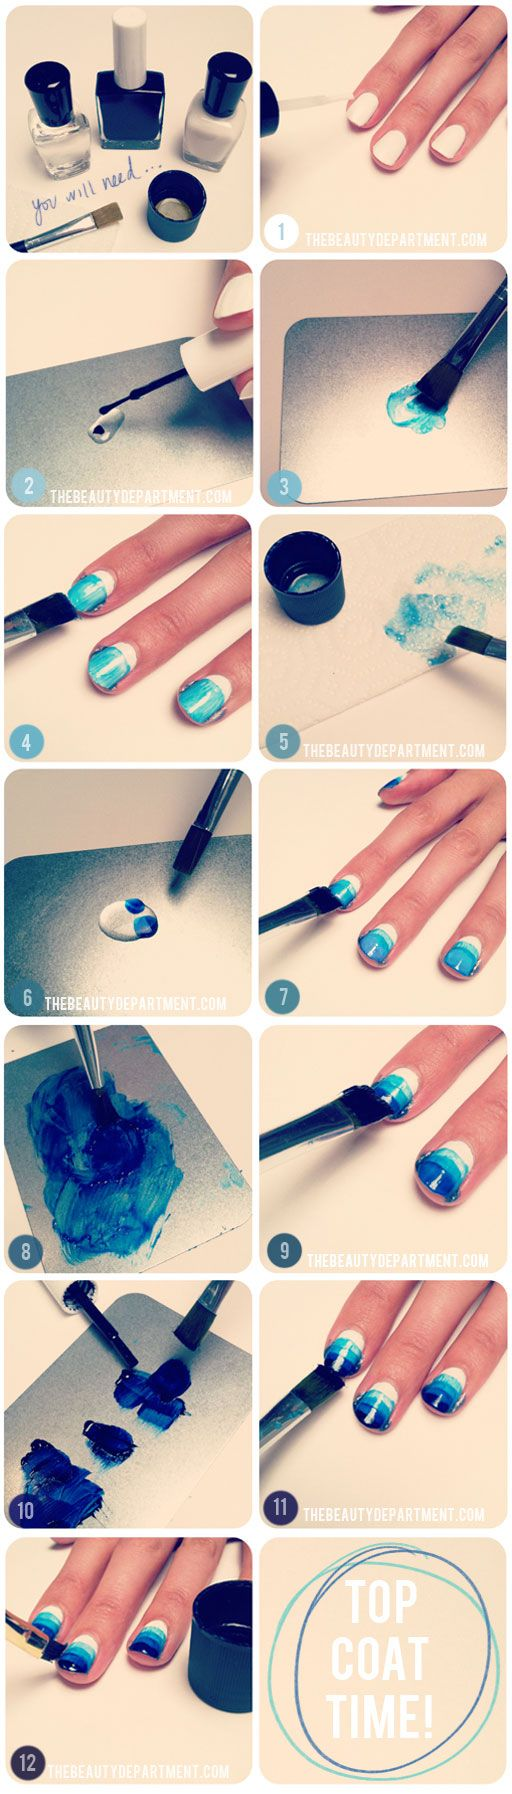 DIY Gradient Nails Pictures, Photos, and Images for Facebook, Tumblr, Pinterest, and Twitter